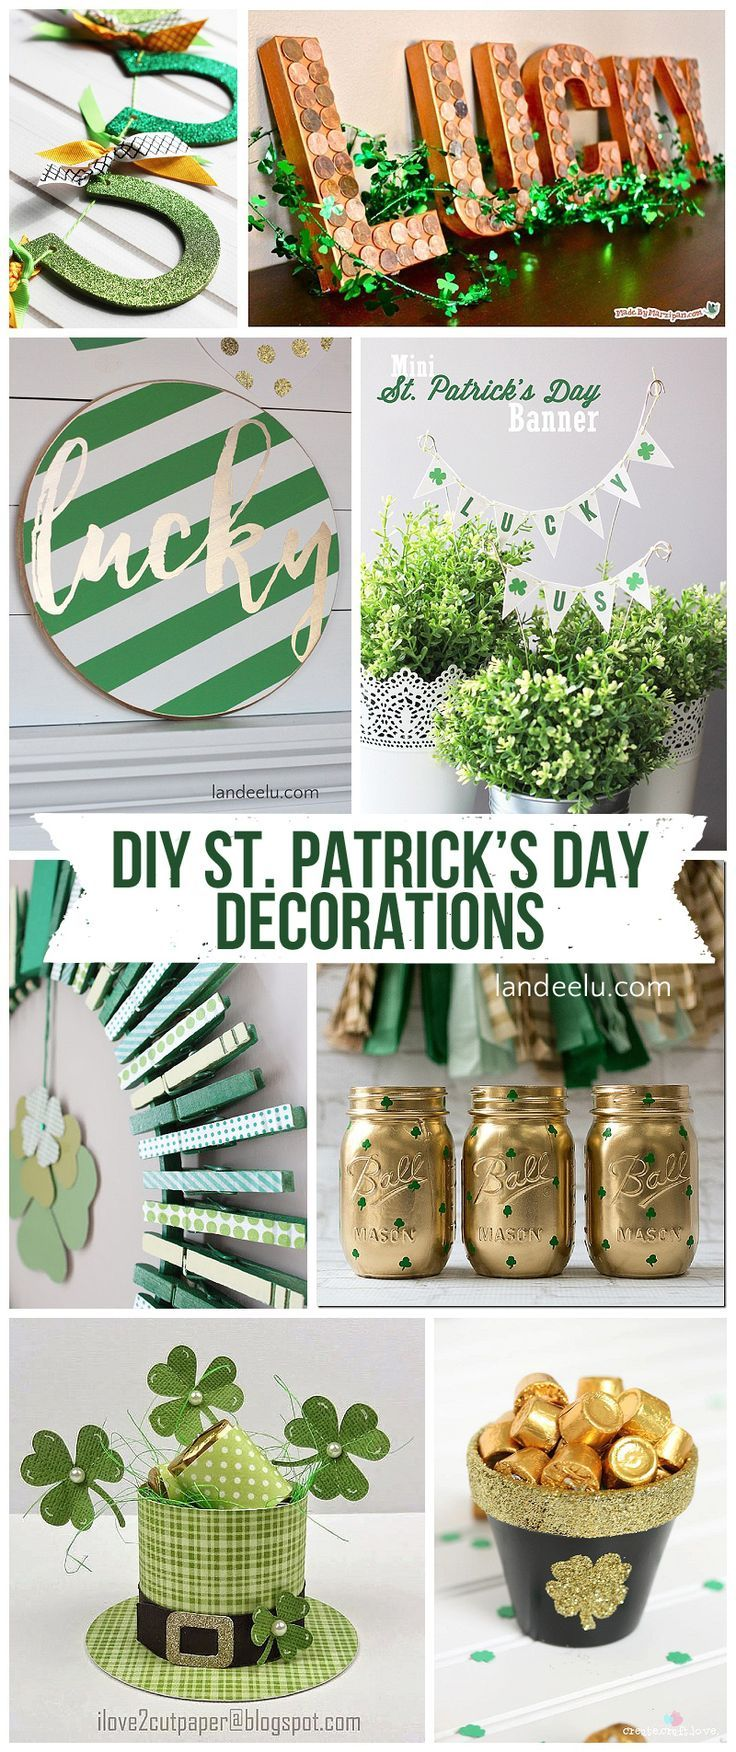 DIY St. Patrick's Day Decorations! So many awesome ideas!